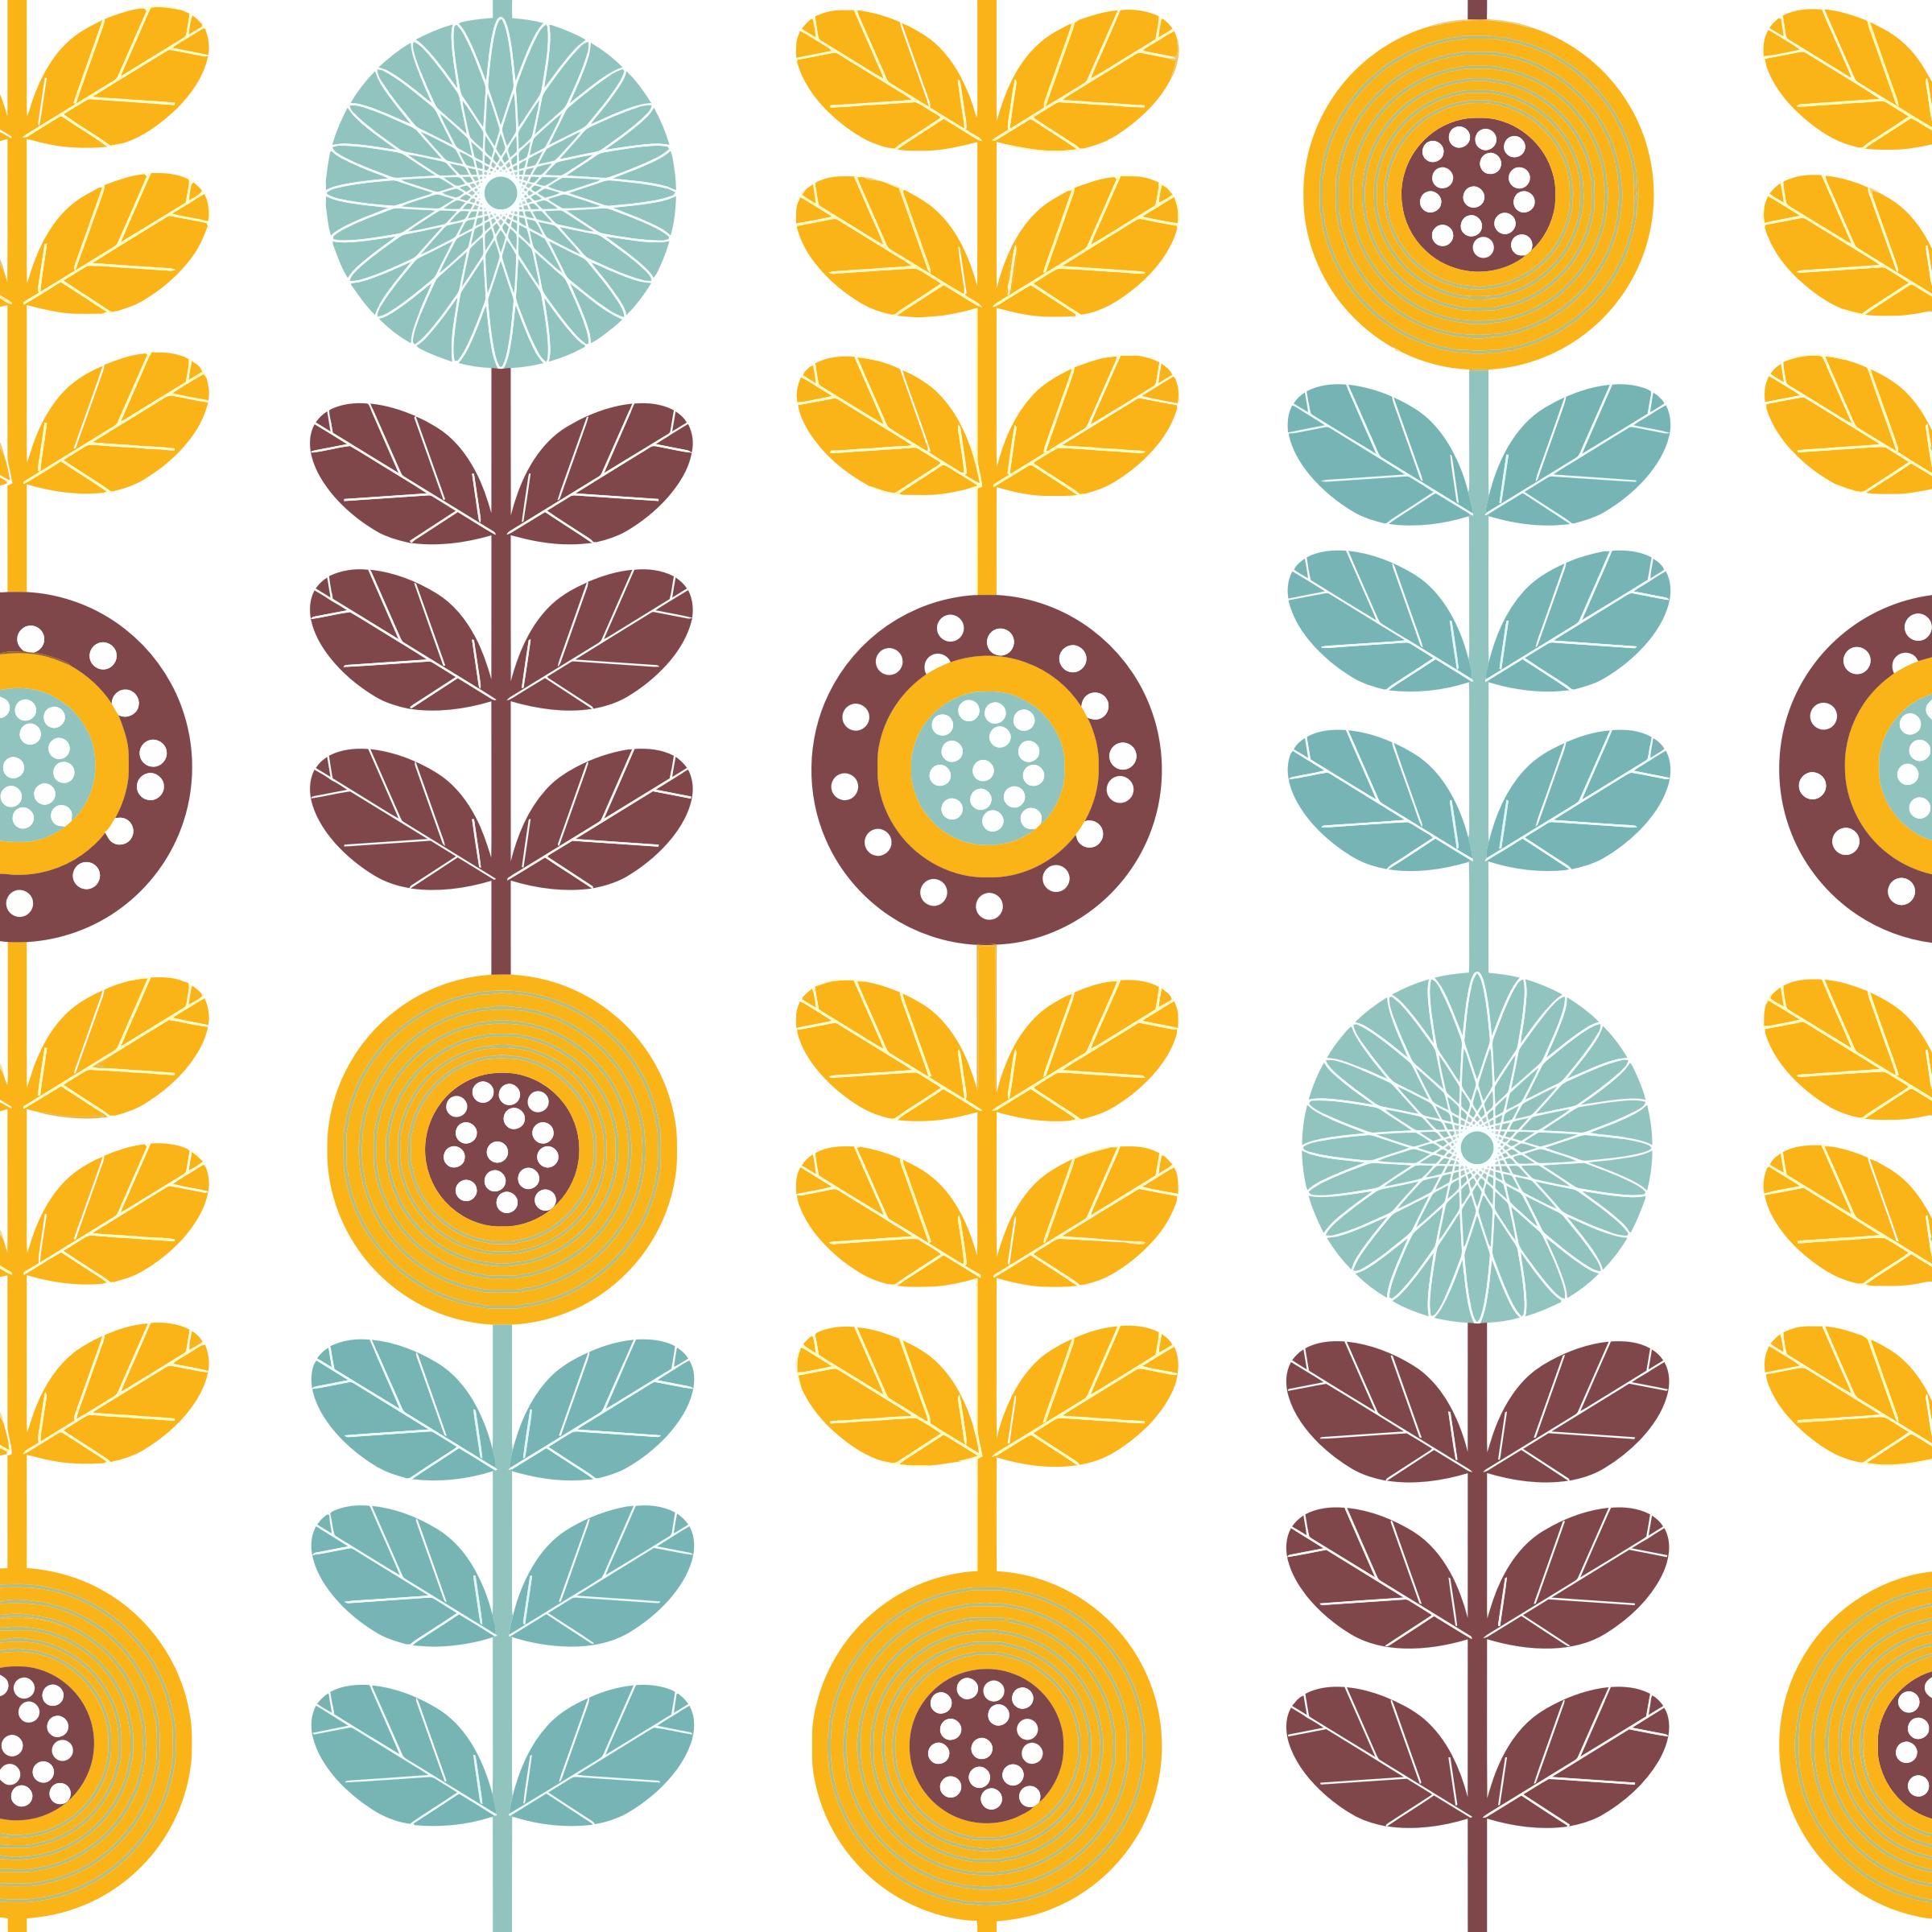 colorful floral background patterns - photo #31